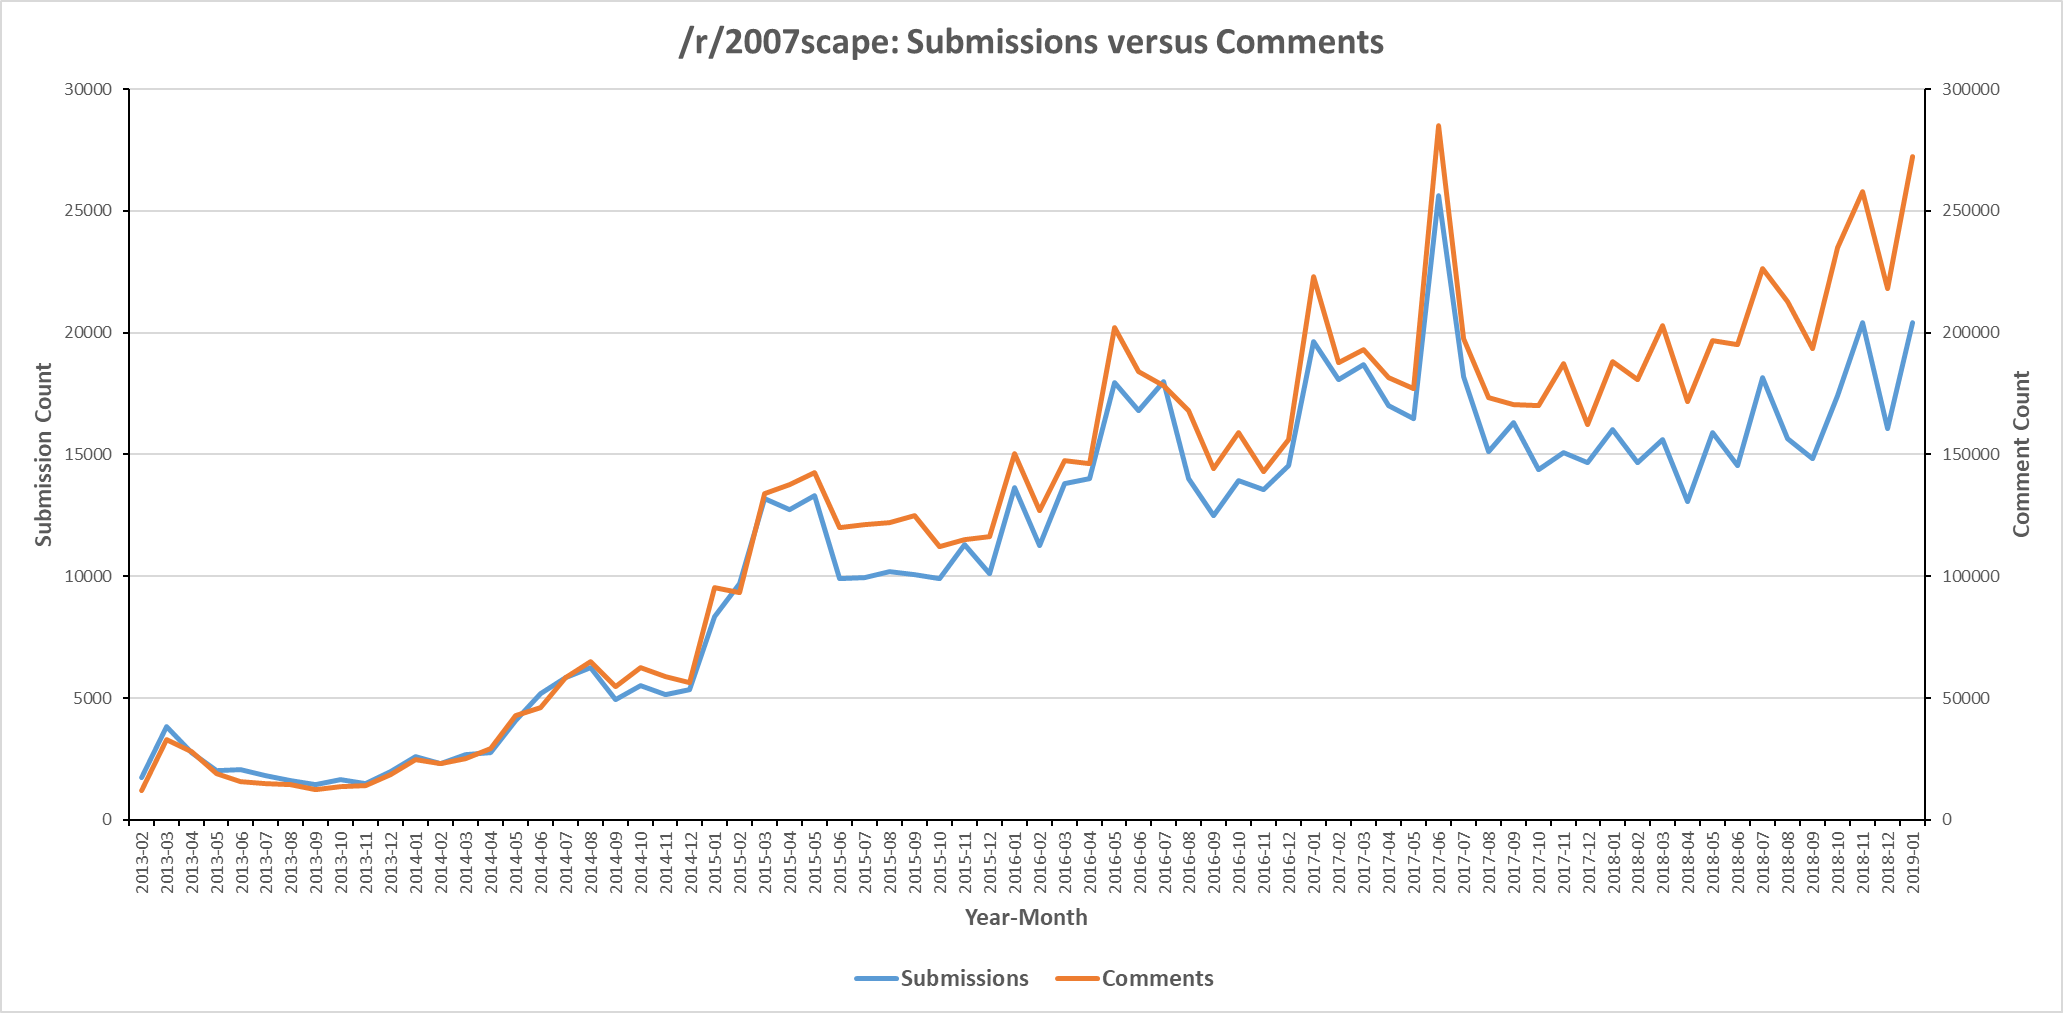 Line graph displaying /r/2007scape submission count versus comment count for six years from 2013-2019.